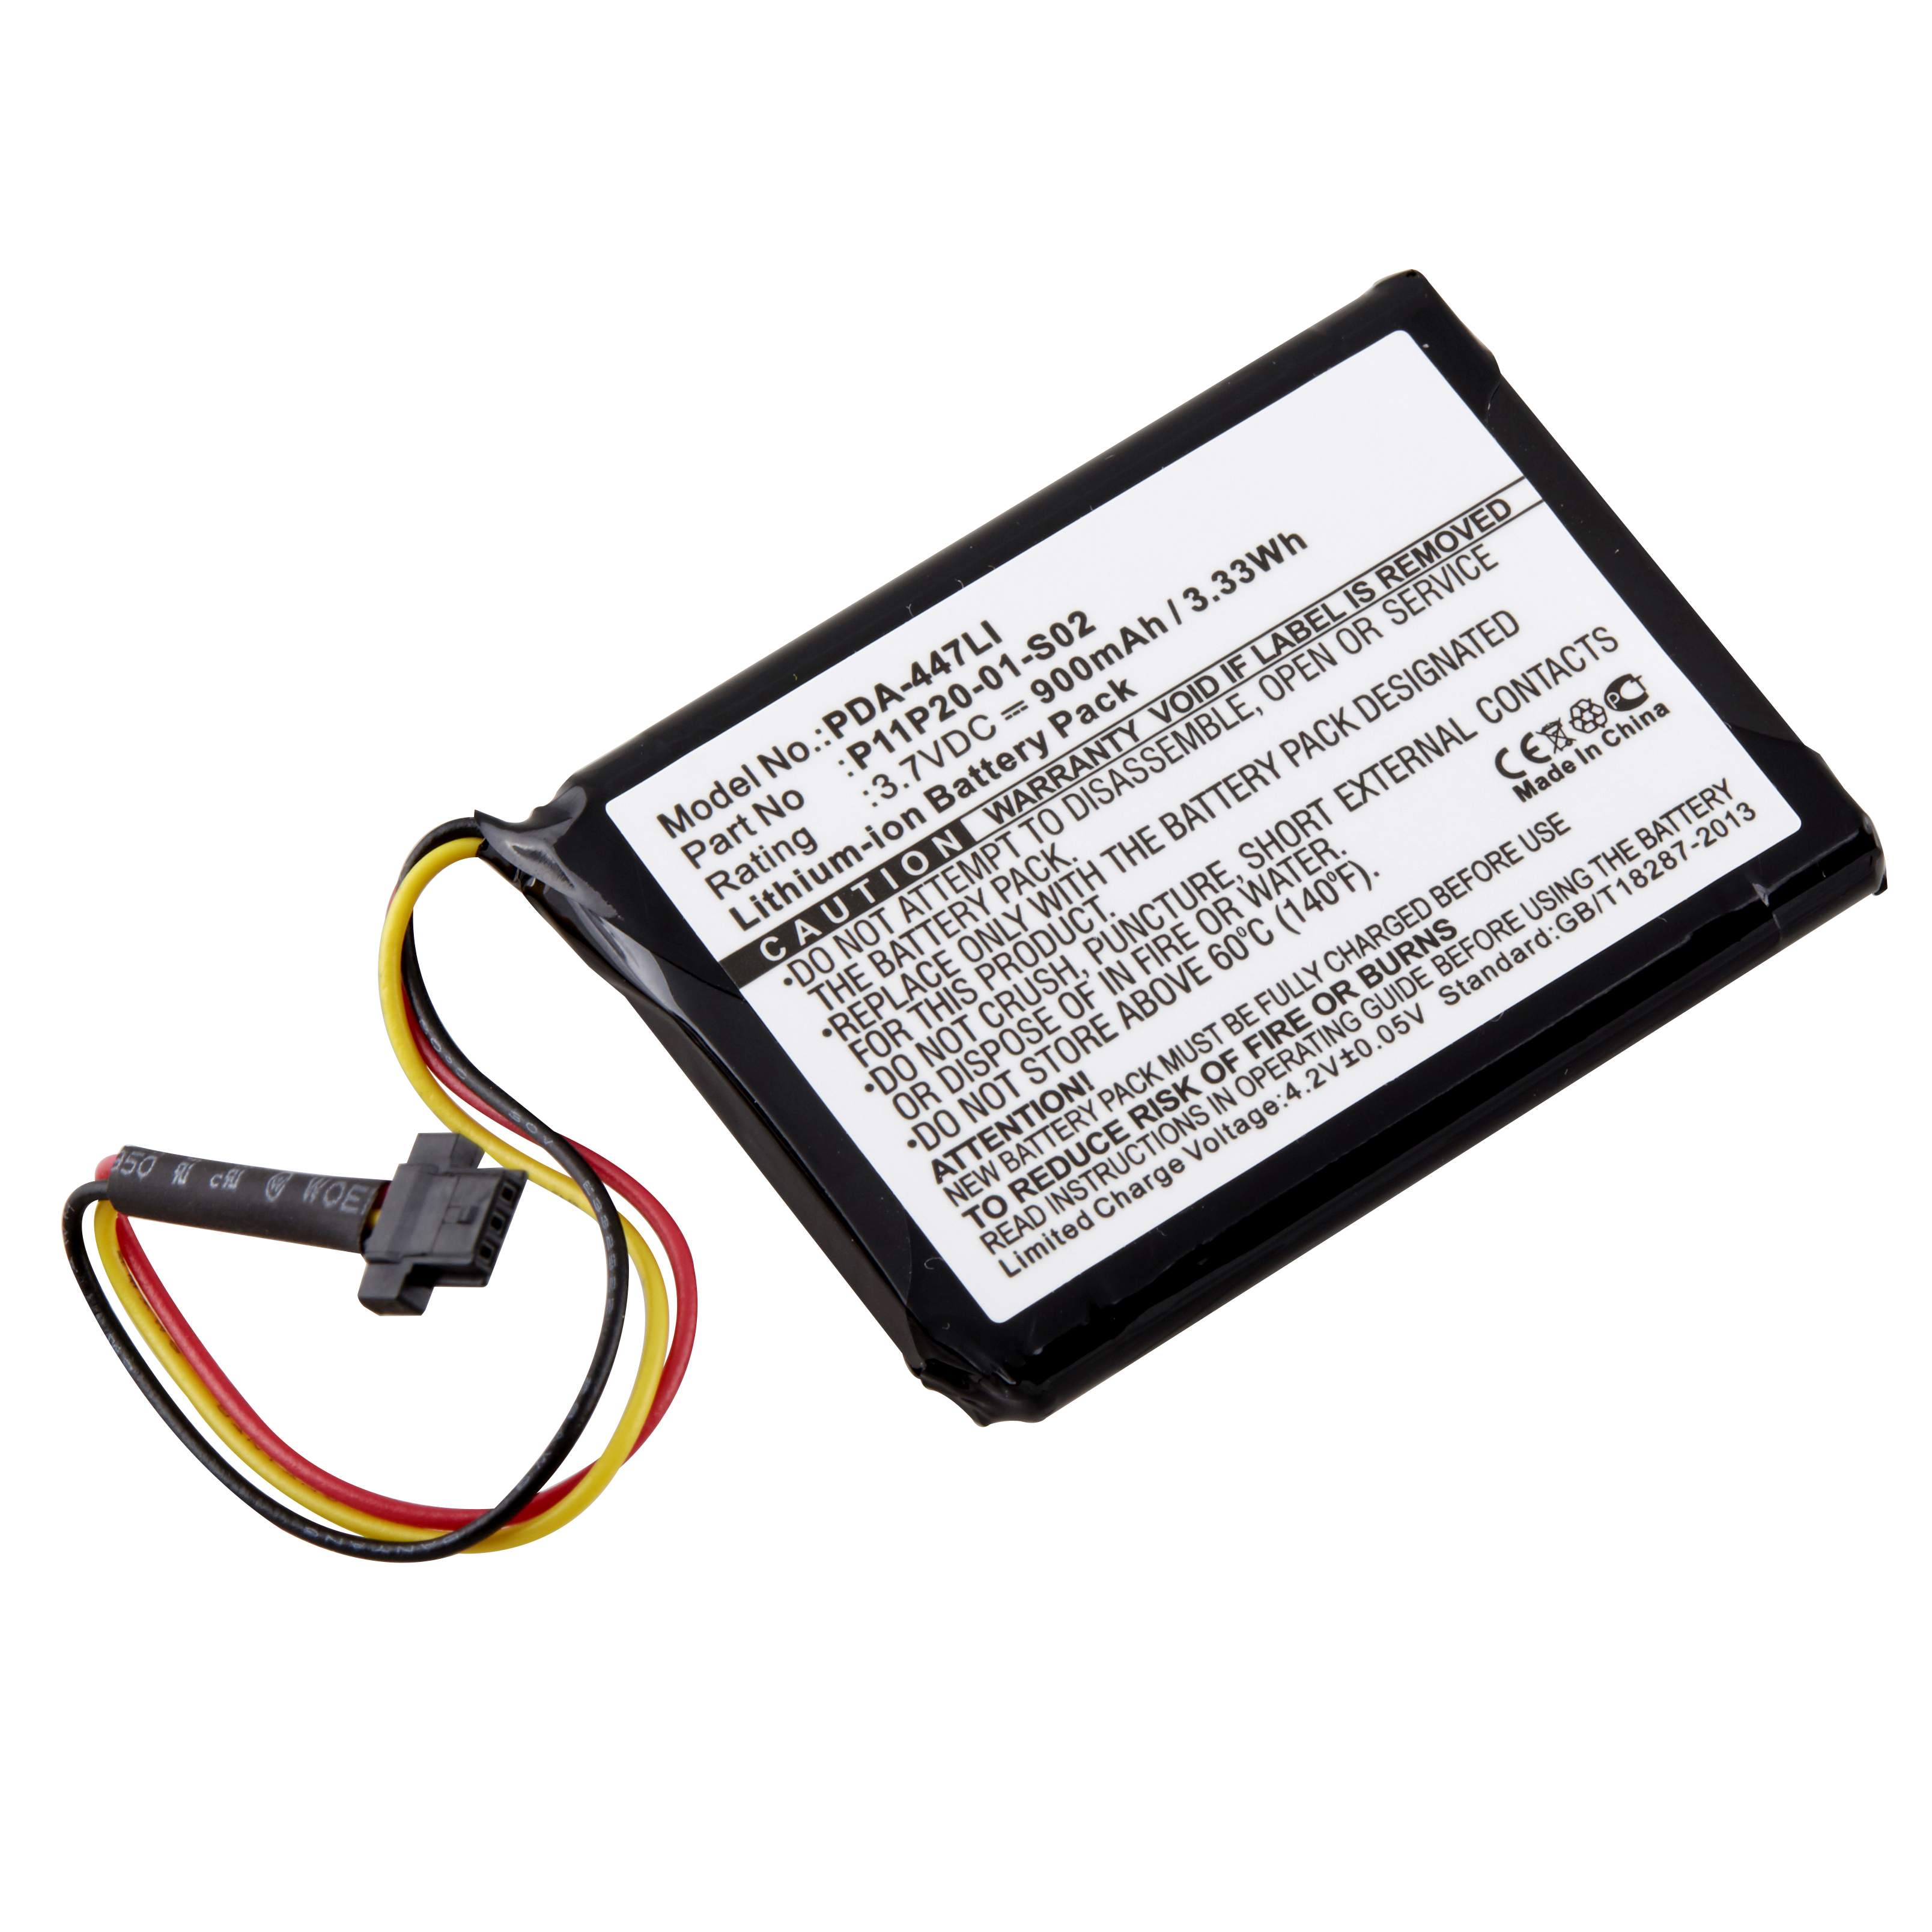 Replacement Tomtom P11p20 01 S02 Gps Battery Batterymart